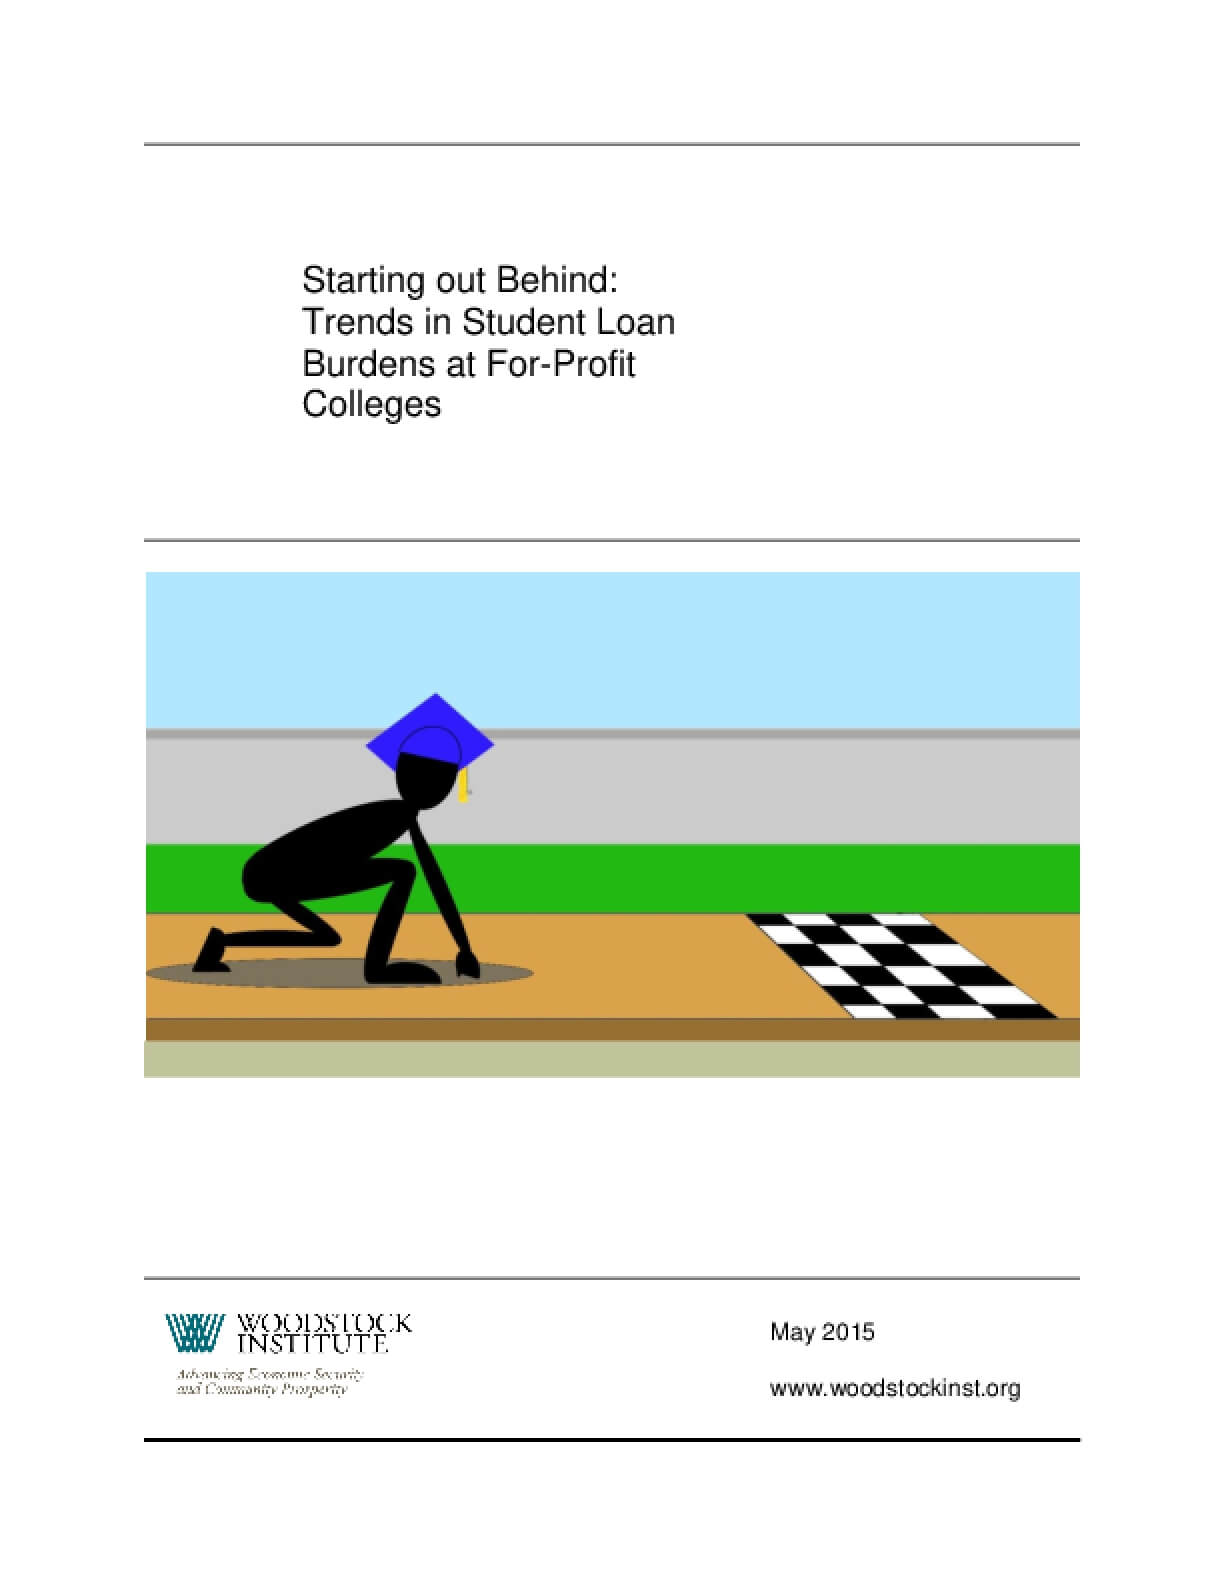 Starting out Behind: Trends in Student Loan Burdens at For-Profit Colleges